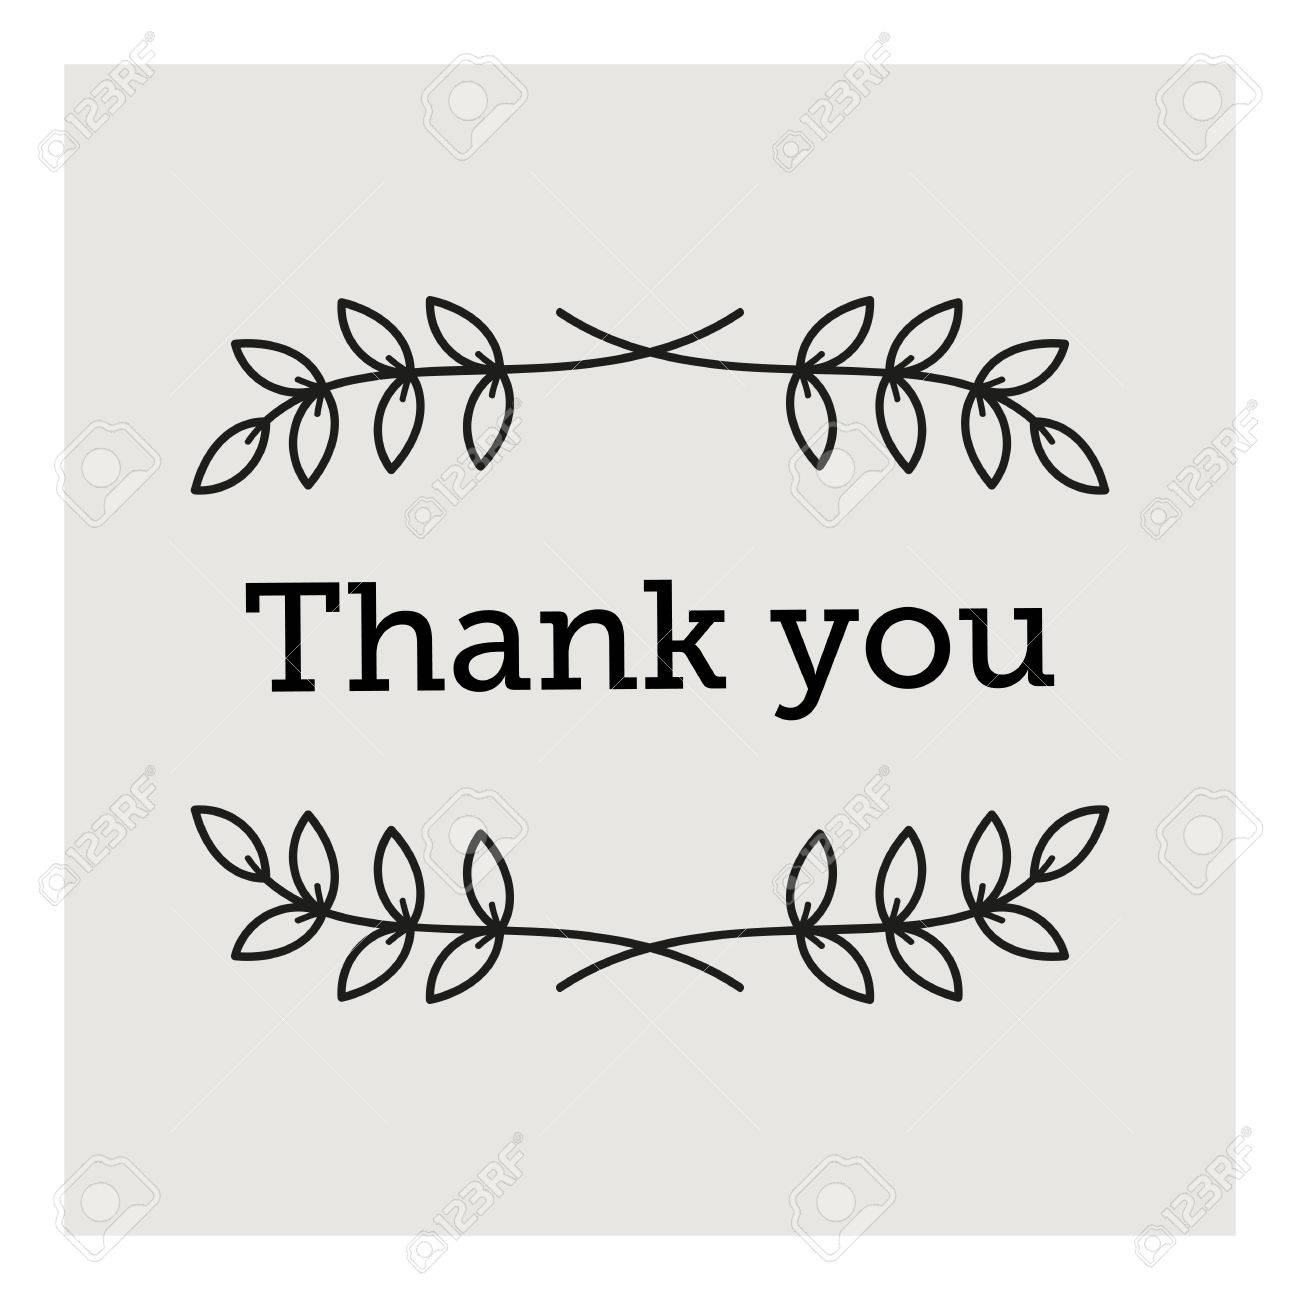 Thank you card background design template royalty free cliparts thank you card background design template stock vector 36662519 spiritdancerdesigns Choice Image